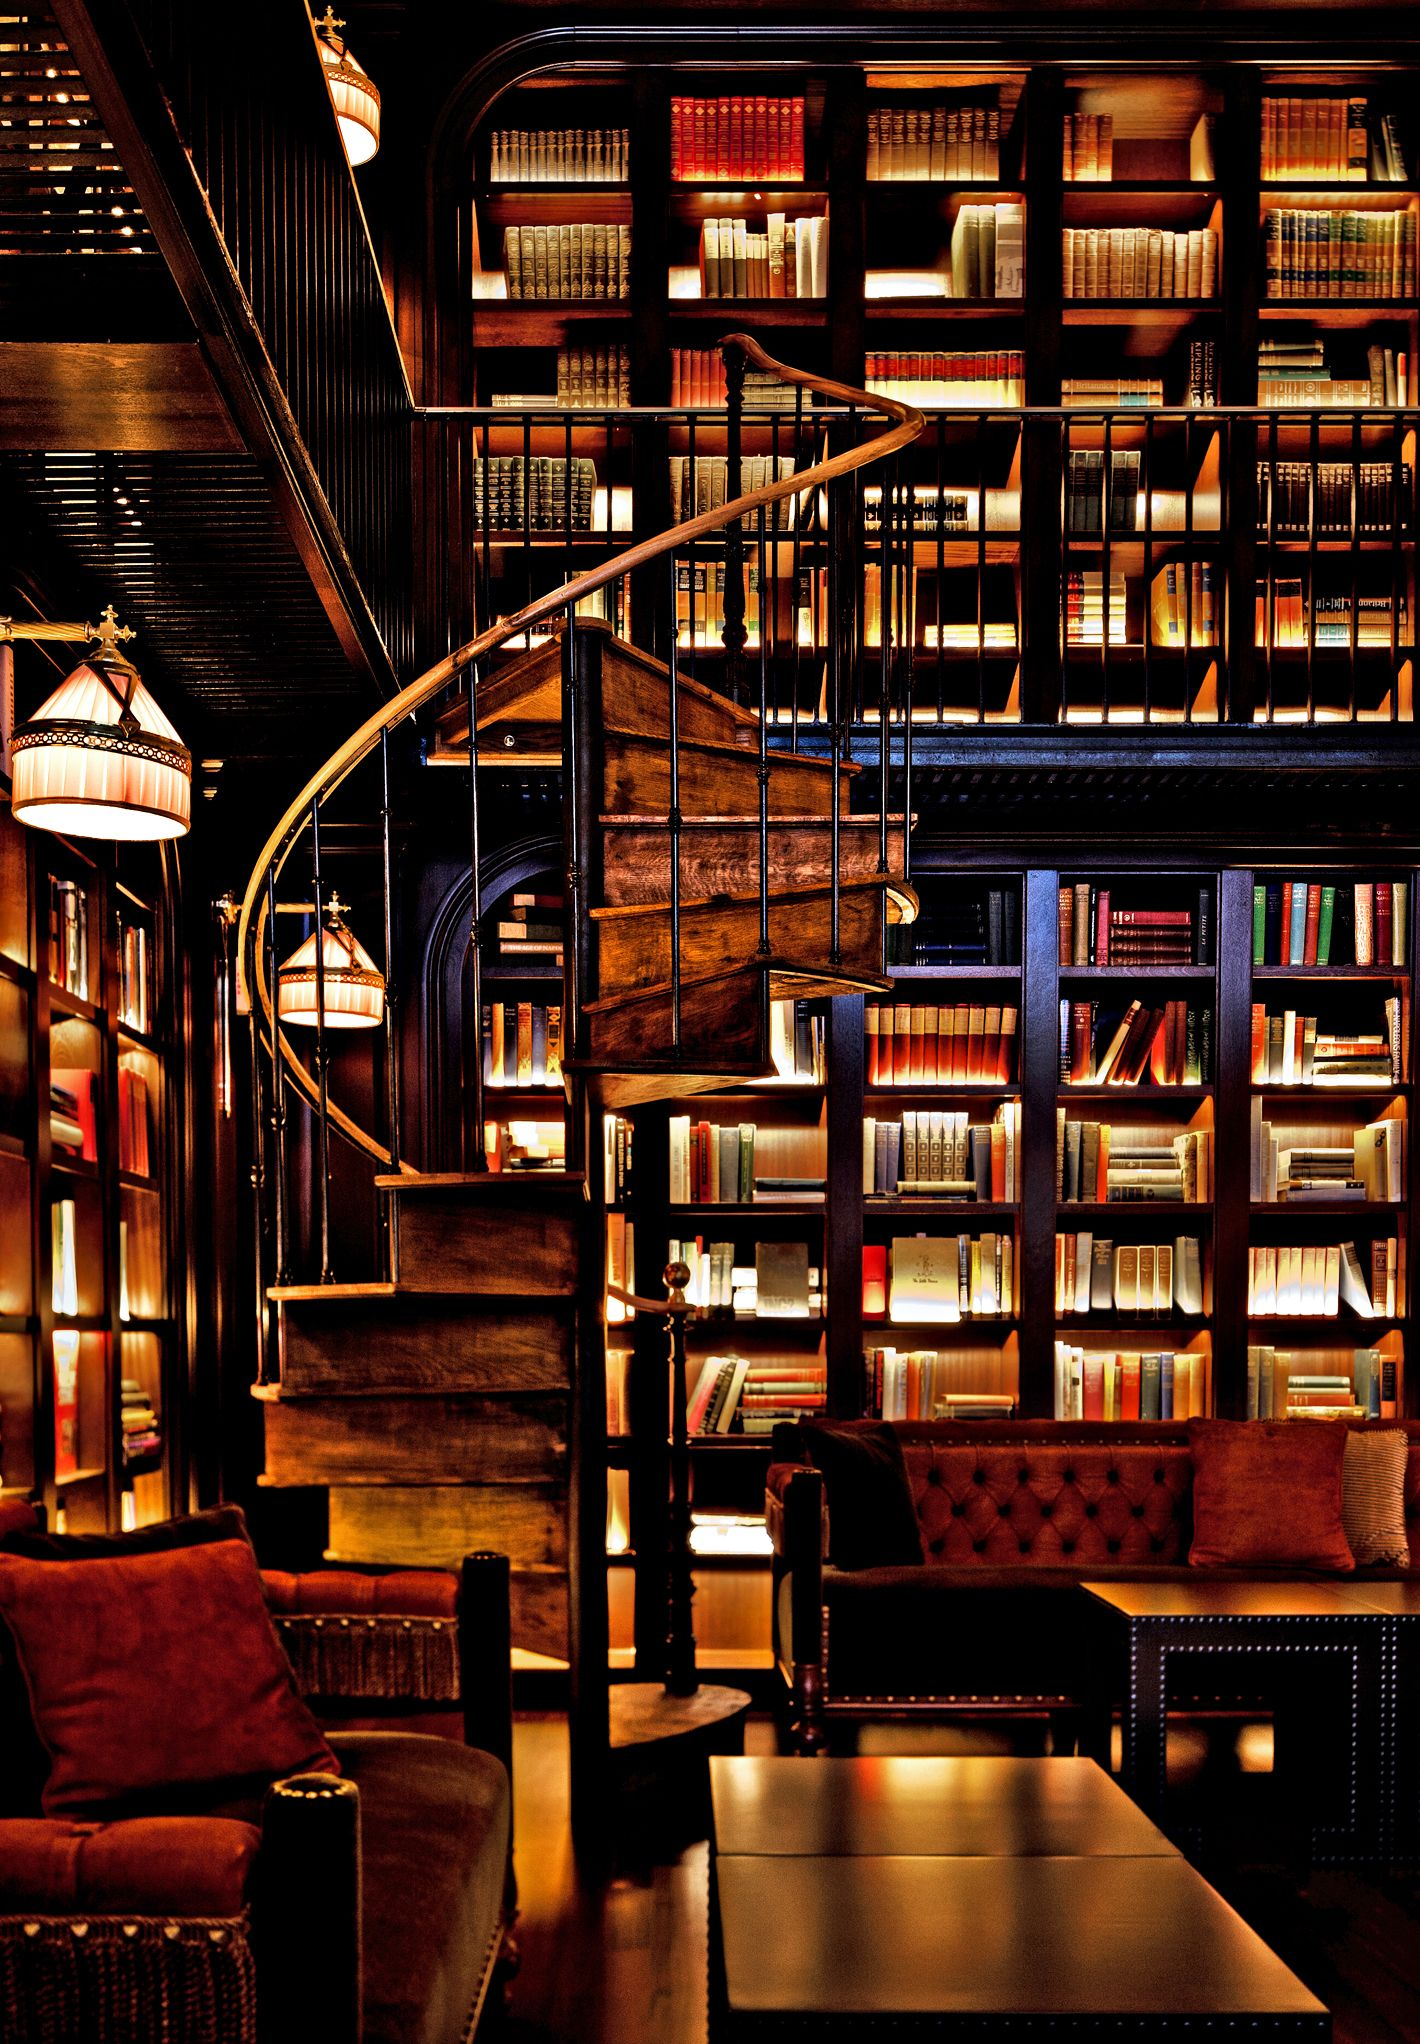 Library, Spiral Staircase, Lighted Bookcases. Is This So